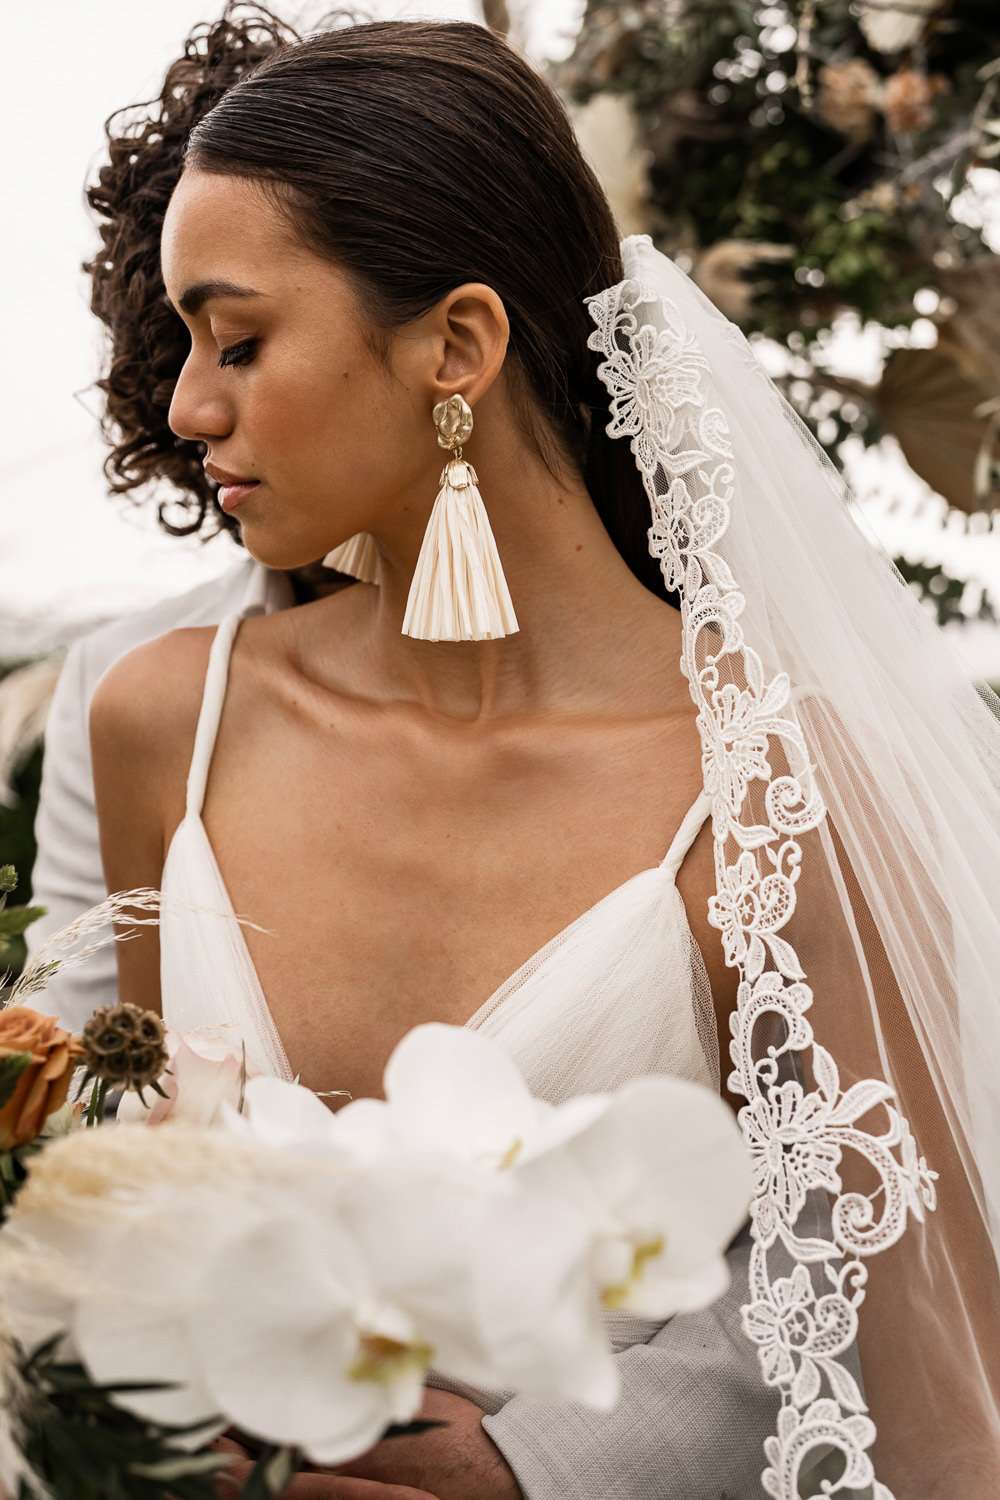 Bride Bridal Earrings Marbella Elopement Wedding Nora Photography